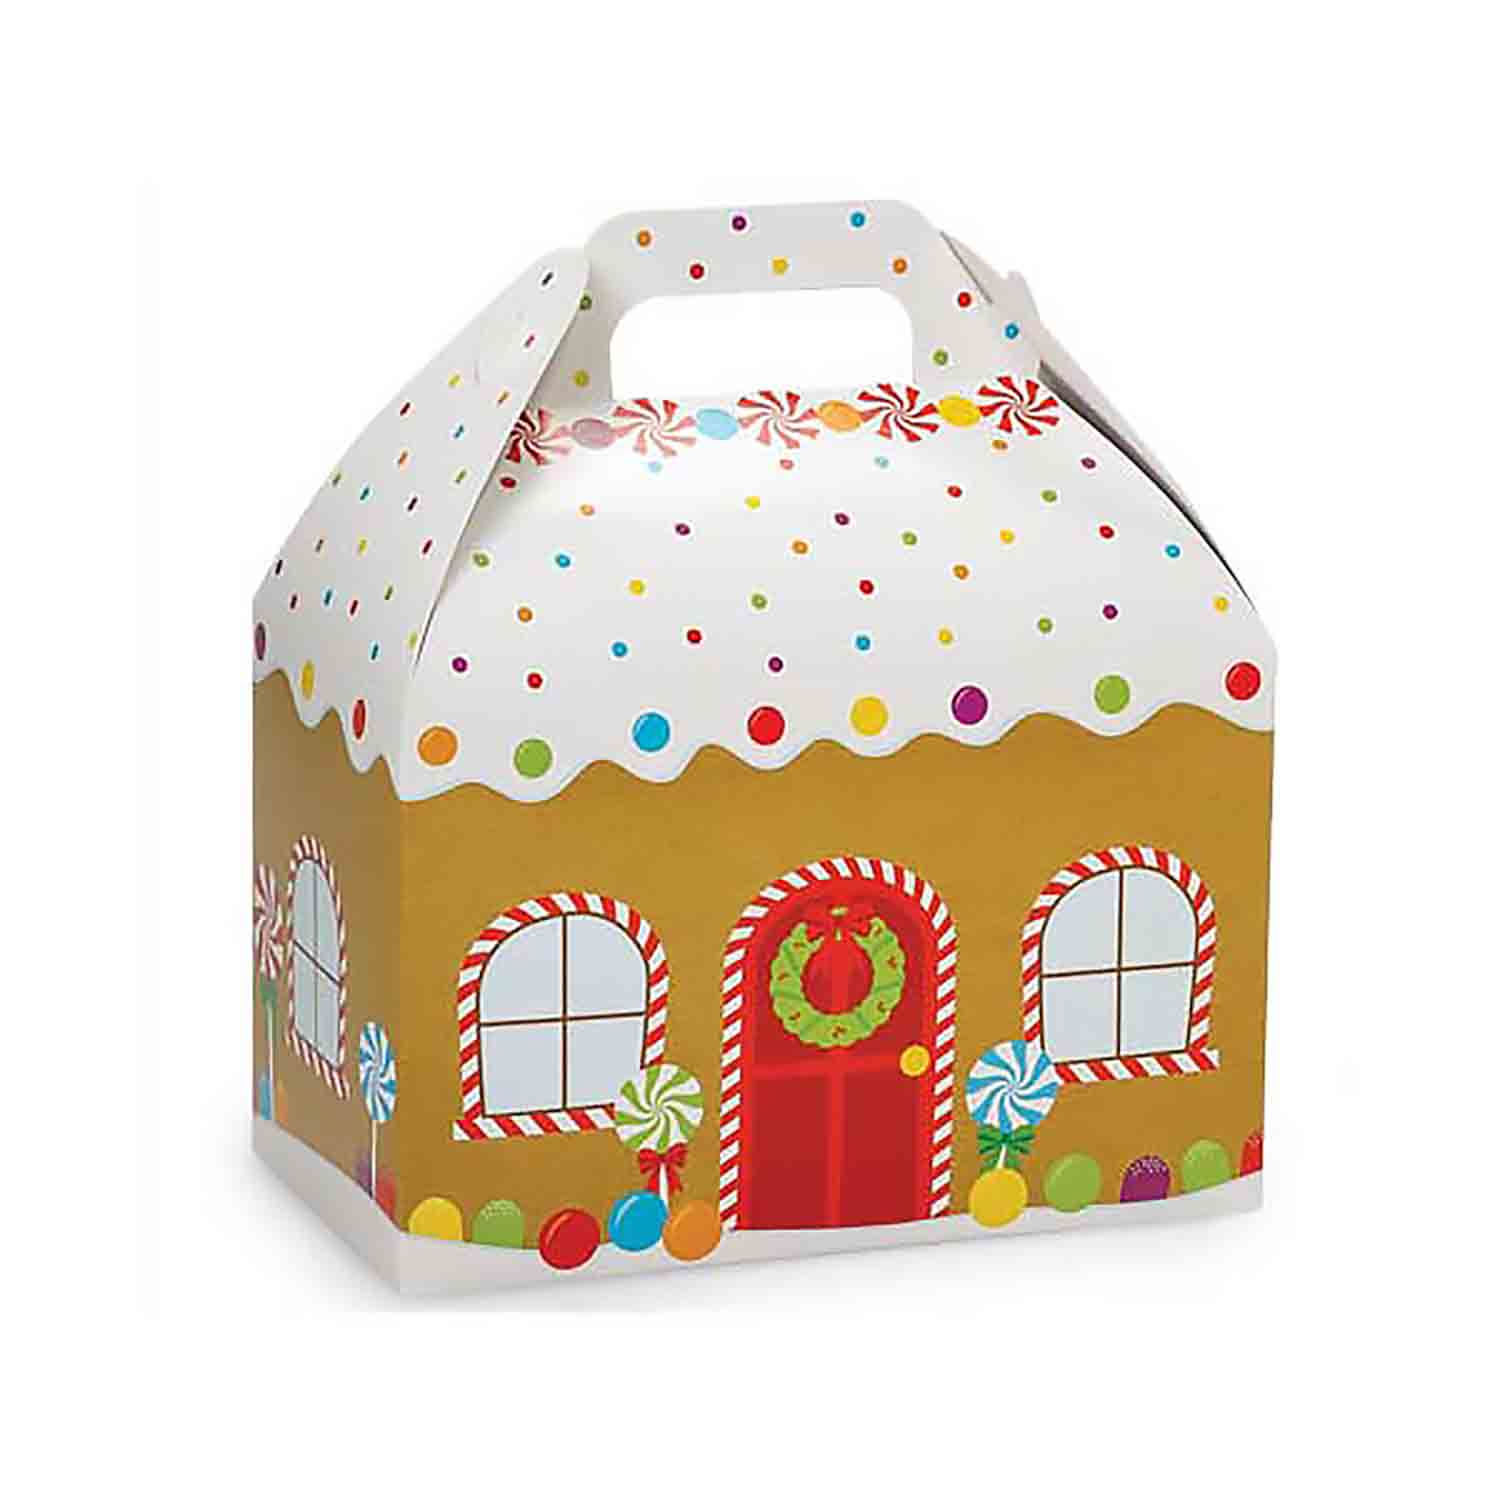 4 lb. Gingerbread House Gable Box